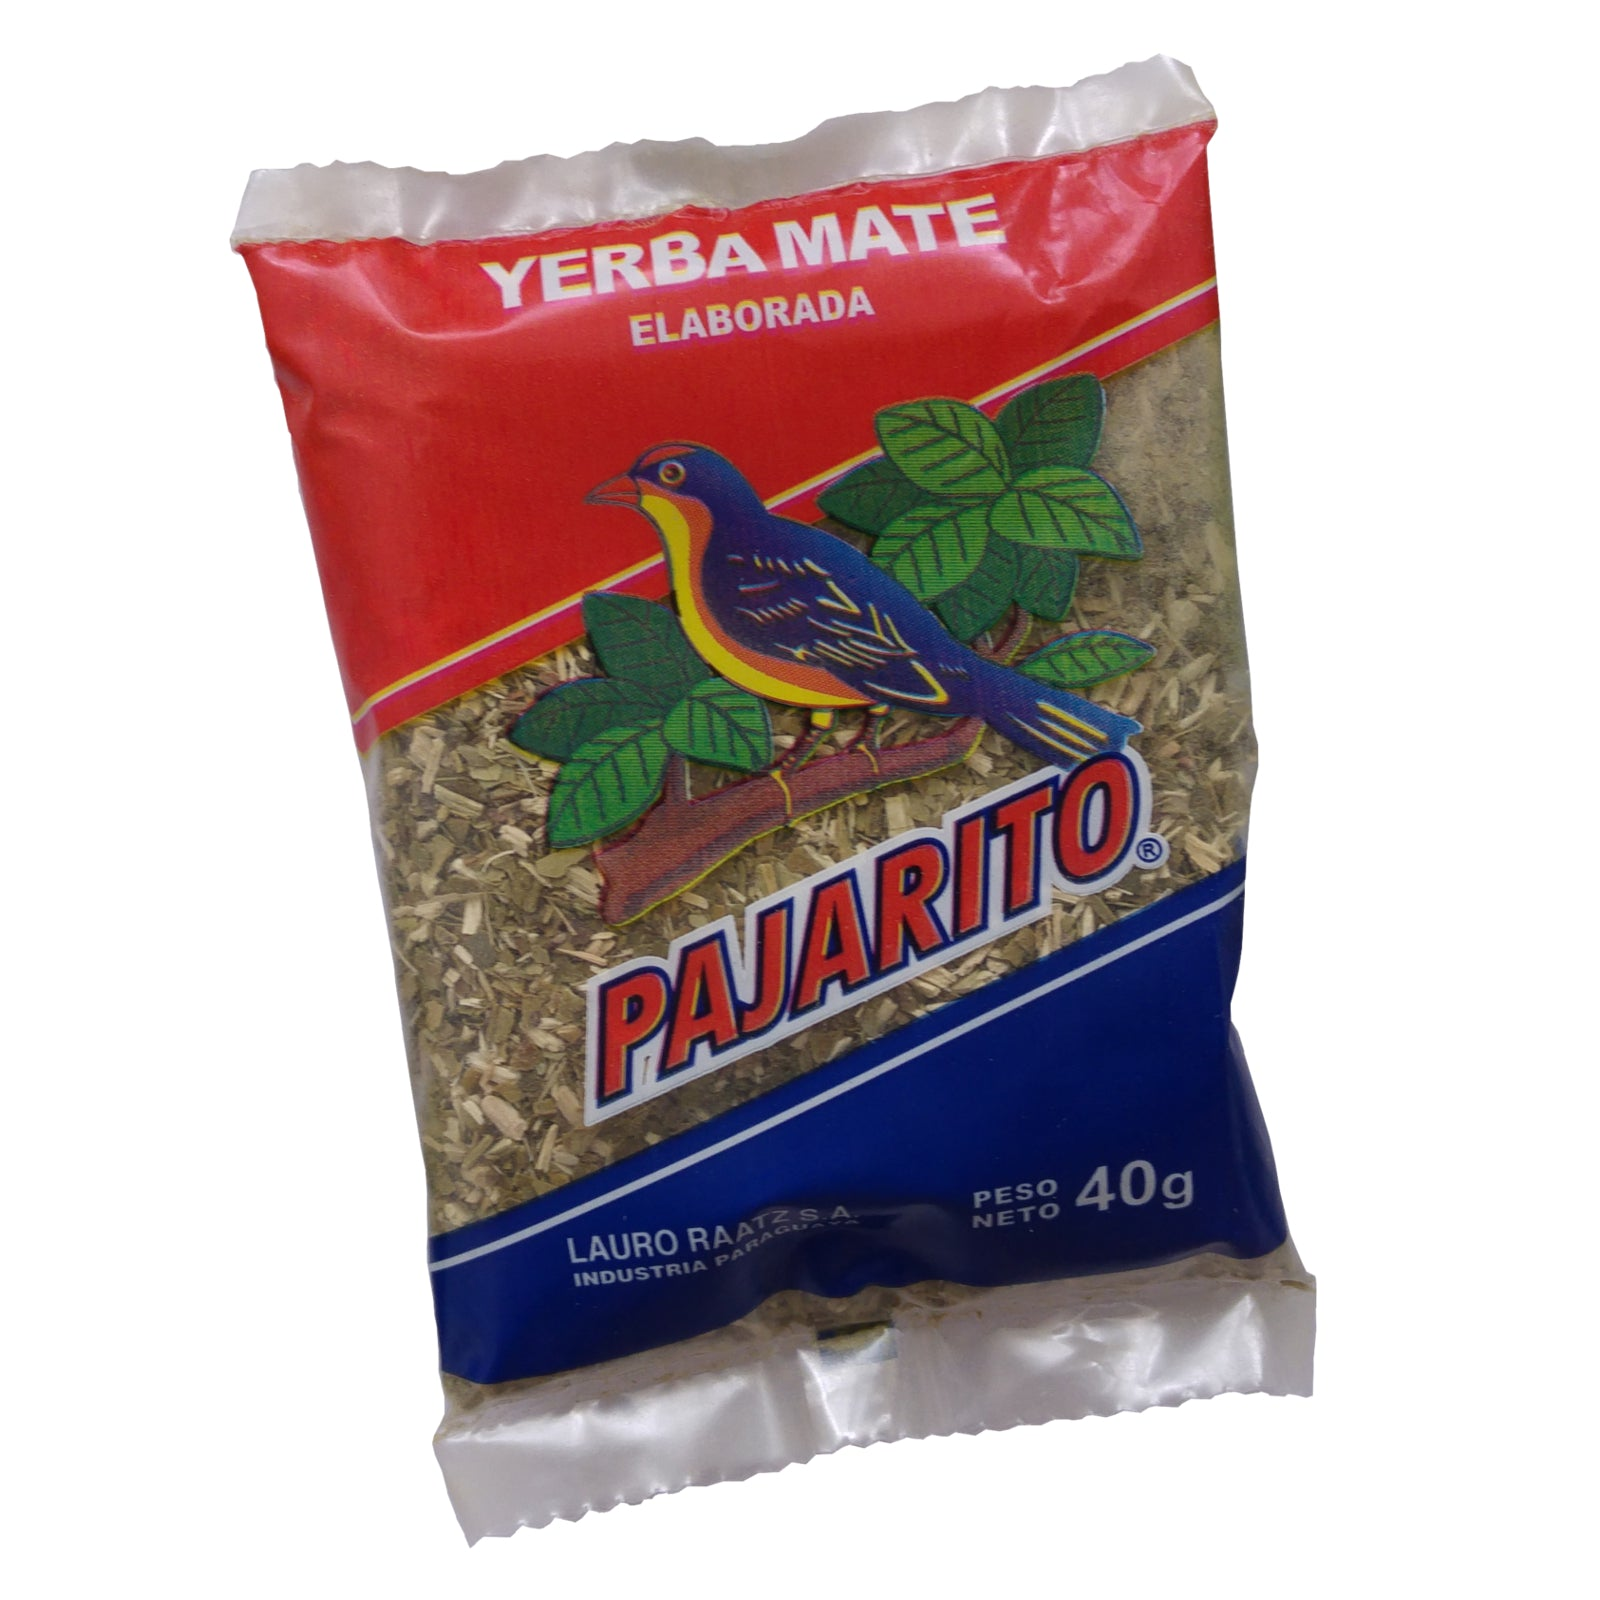 Yerba Mate Pajarito Traditional 40gm